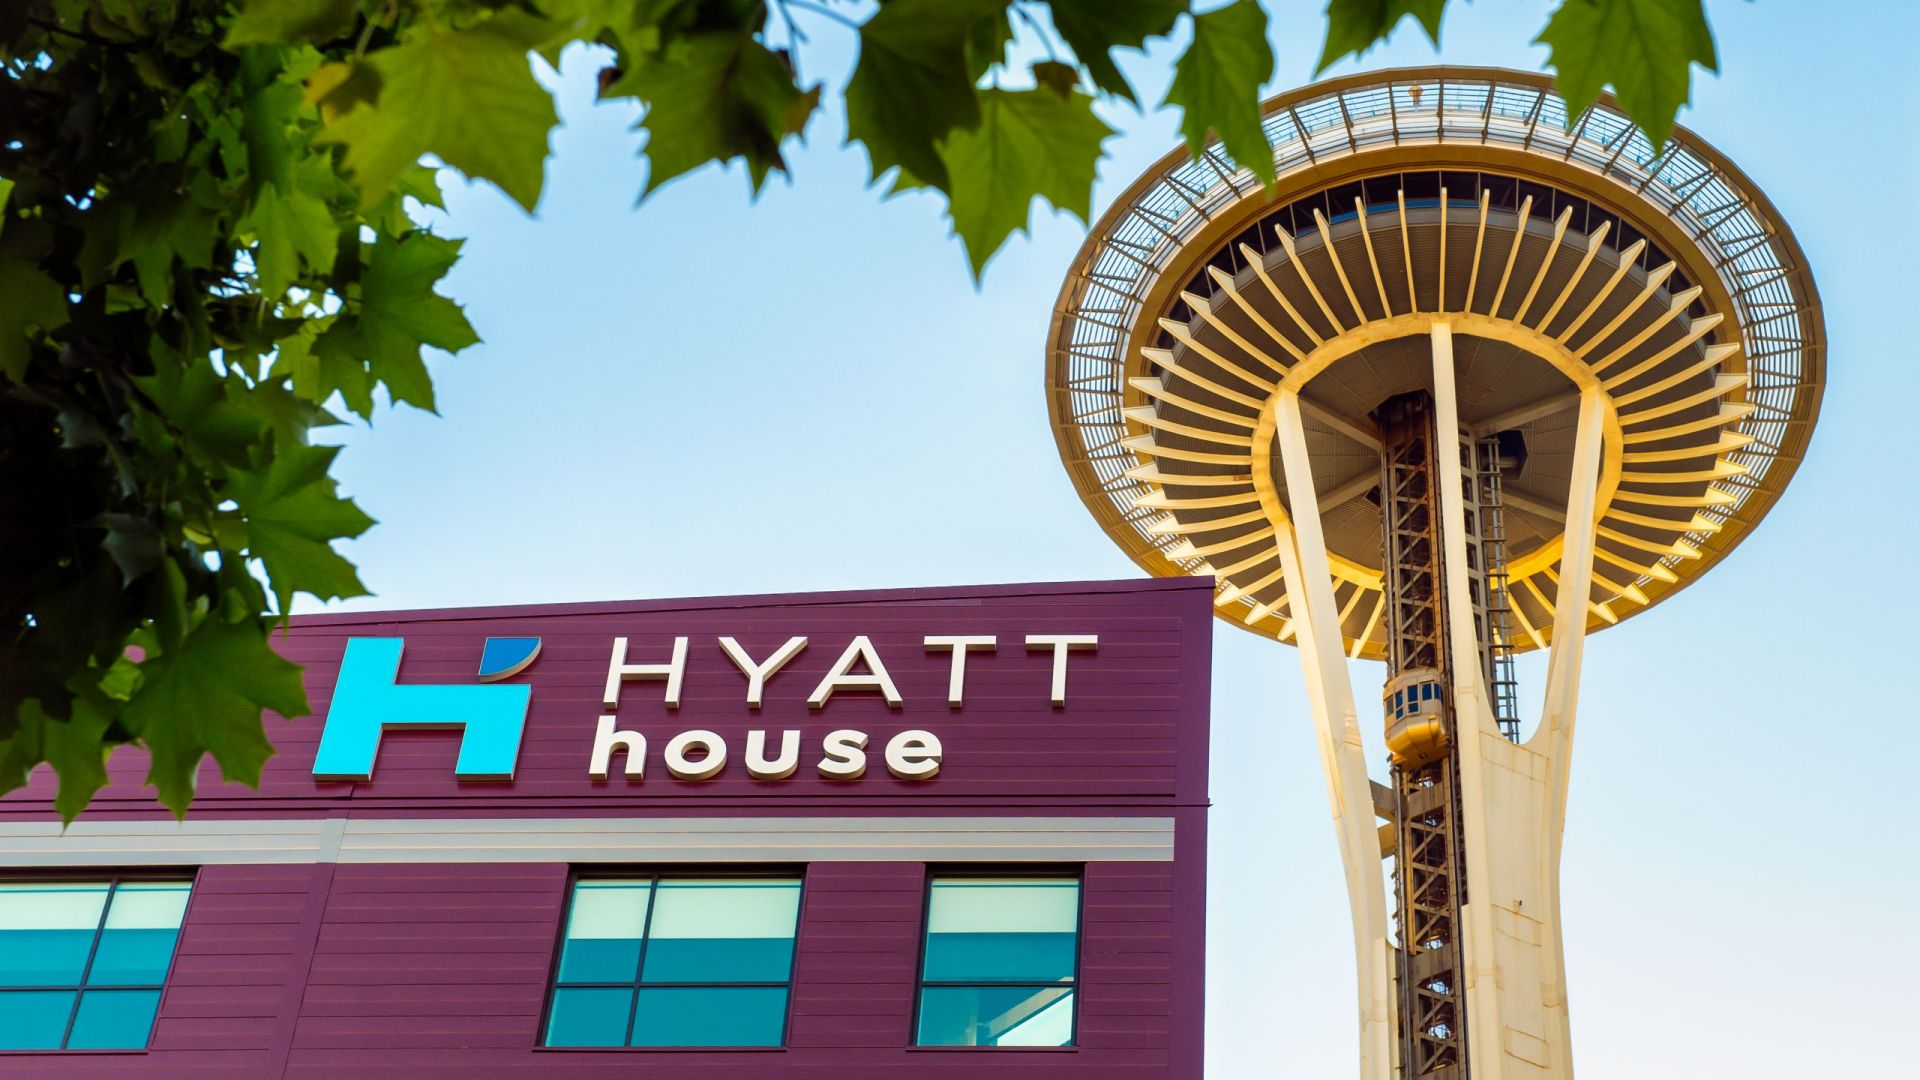 Hyatt House Seattle Downtown exterior